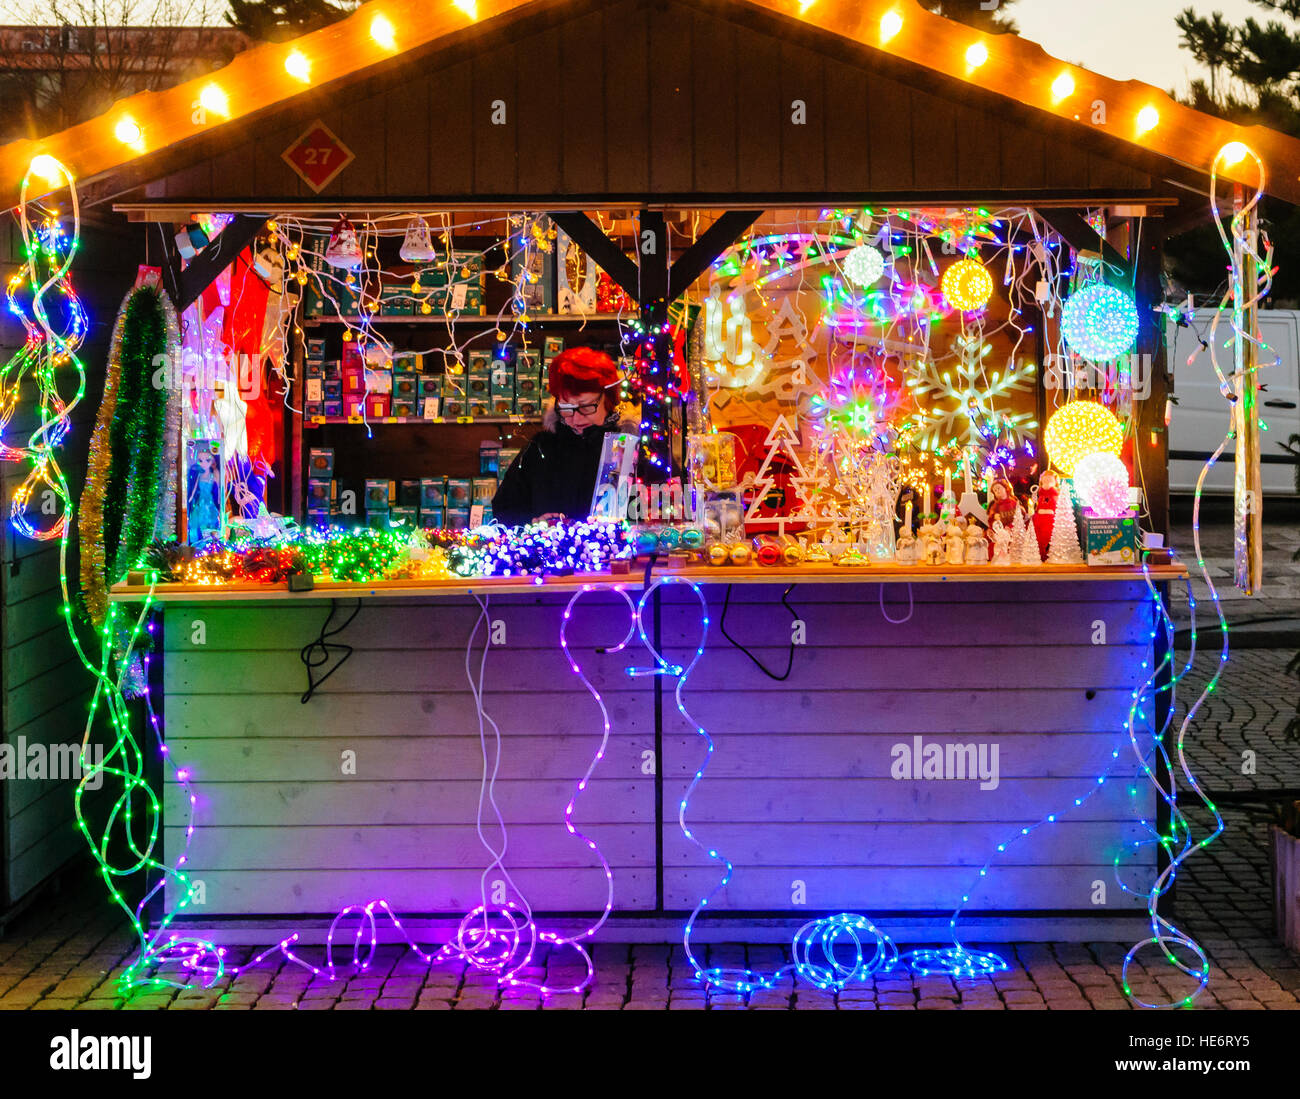 A stall selling Christmas tree lights and decorations at the Christmas Market, Gdansk, Poland Stock Photo